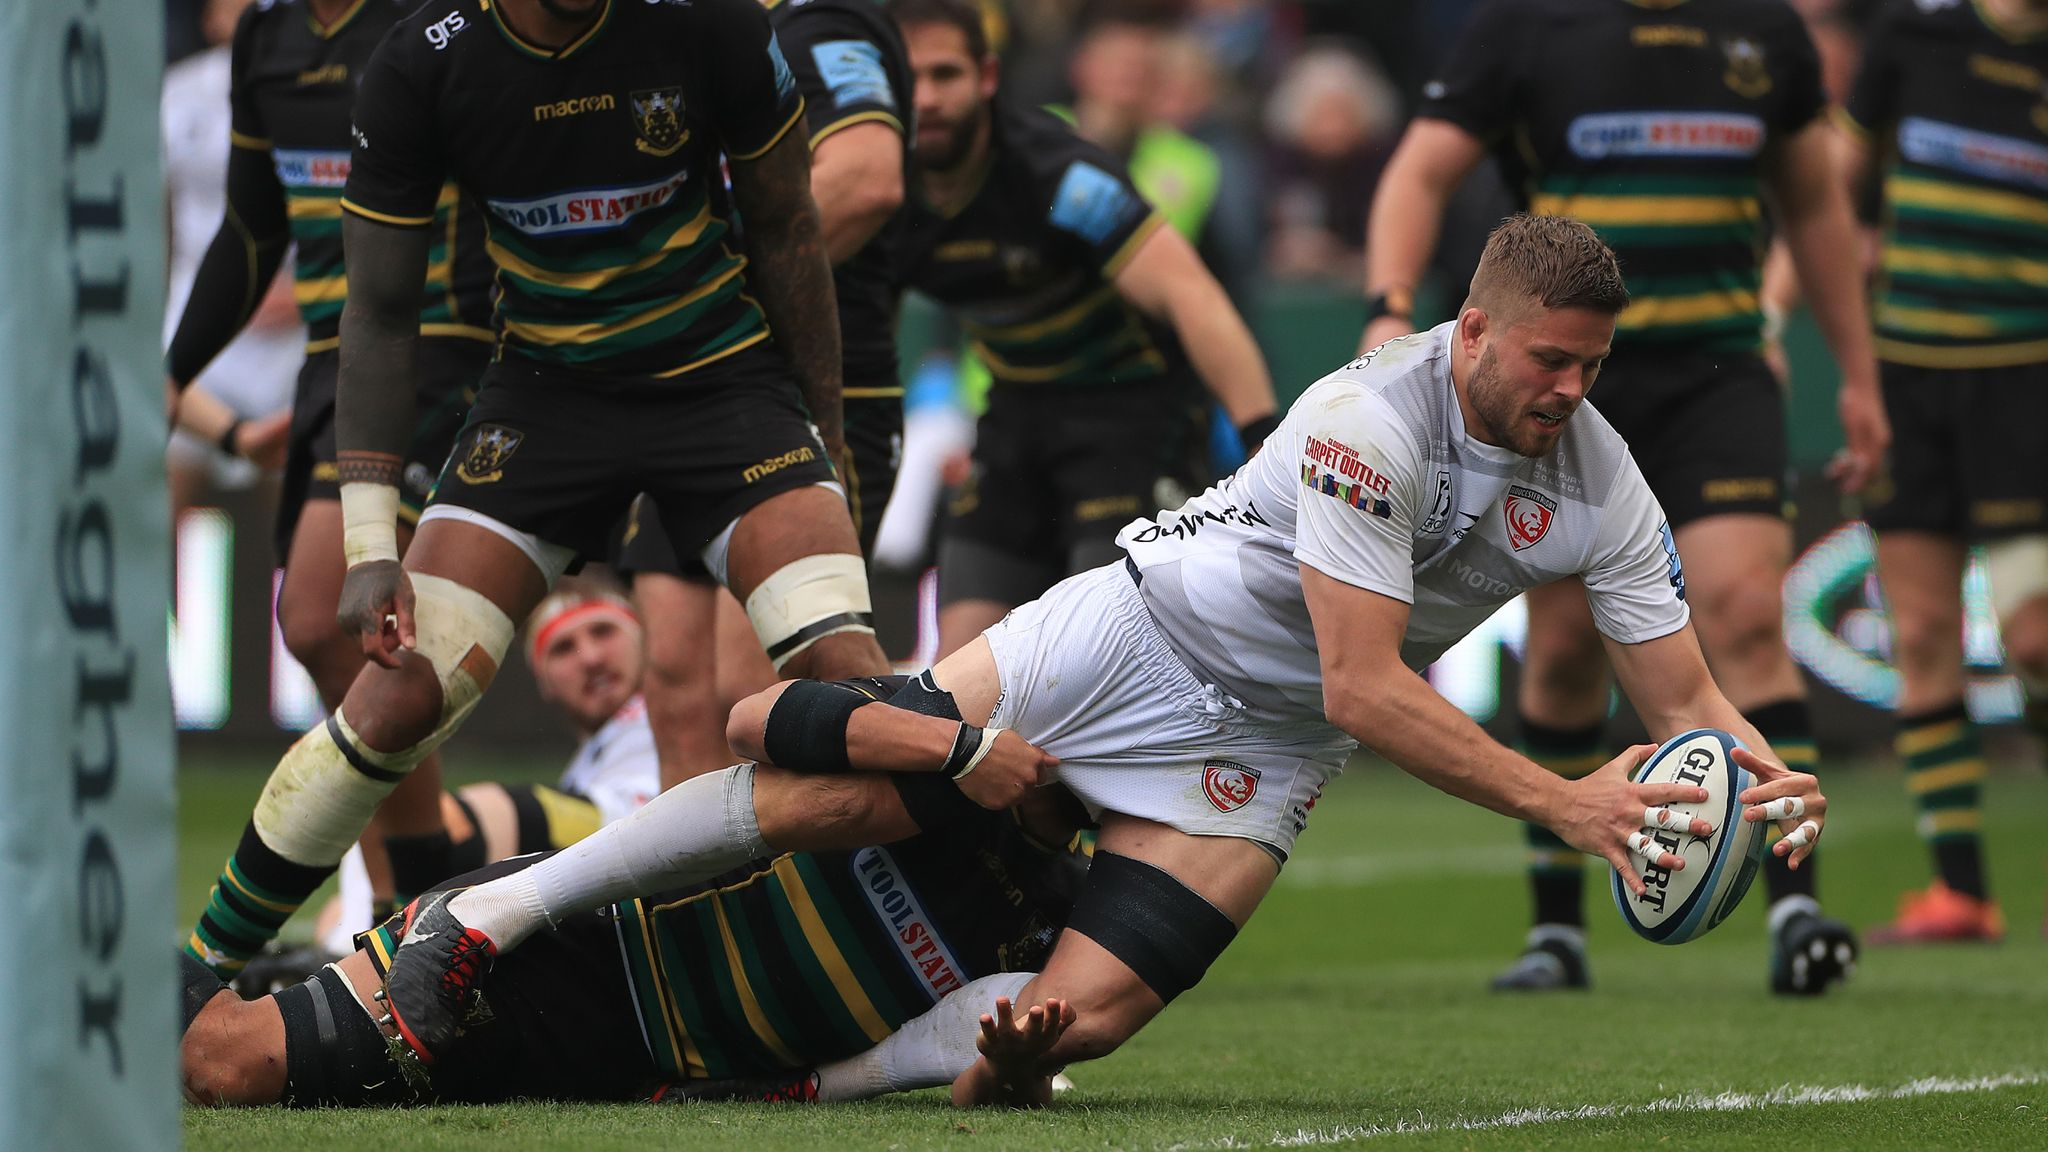 Gallagher Premiership set for pivotal Round 19 | Rugby Union News